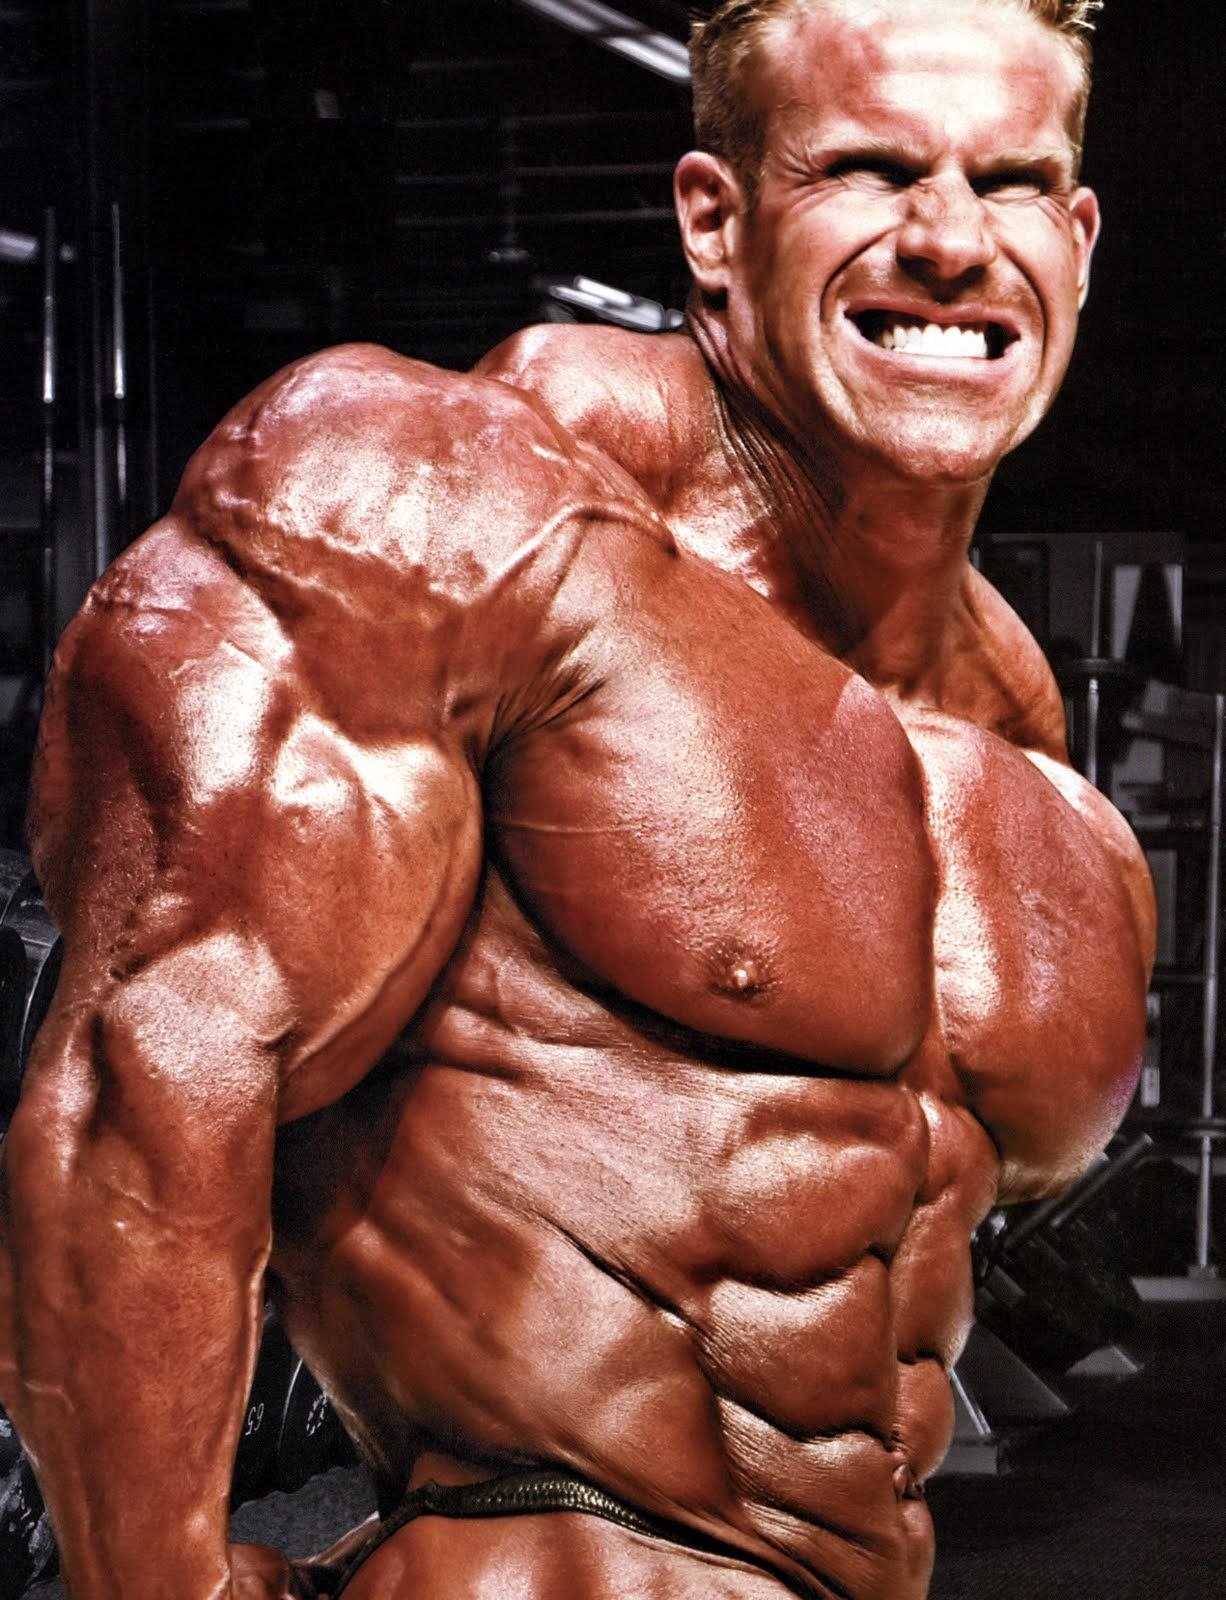 body builder   Pictures of Jay Cutler (HQ) - Bodybuilding